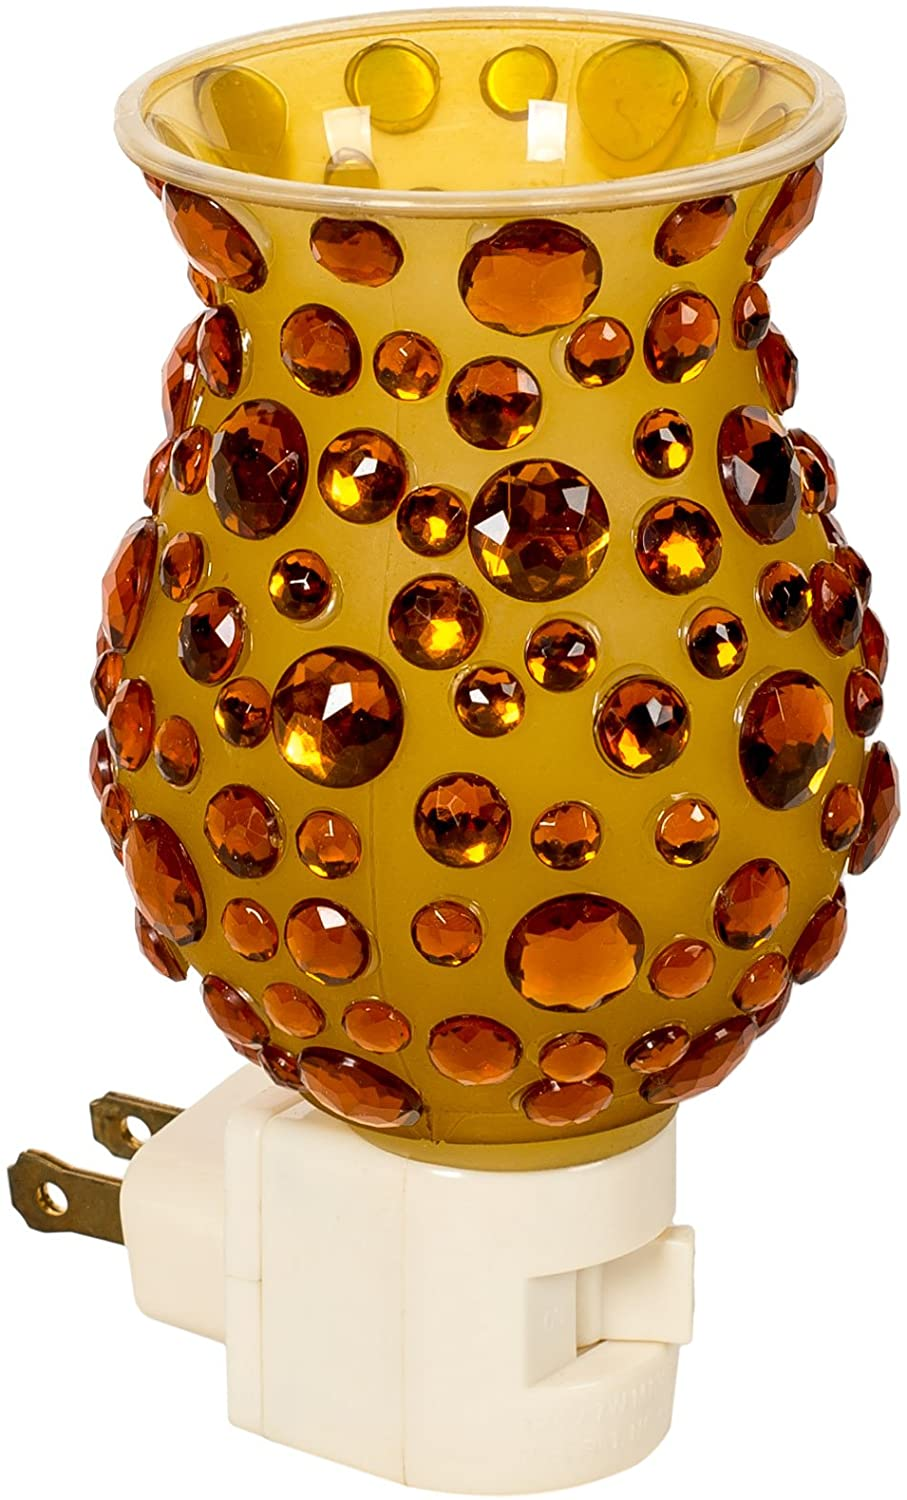 Gift Connection Amber Jeweled 5 x 3 Glass Electric Wall Plug-in Mosaic Night Light